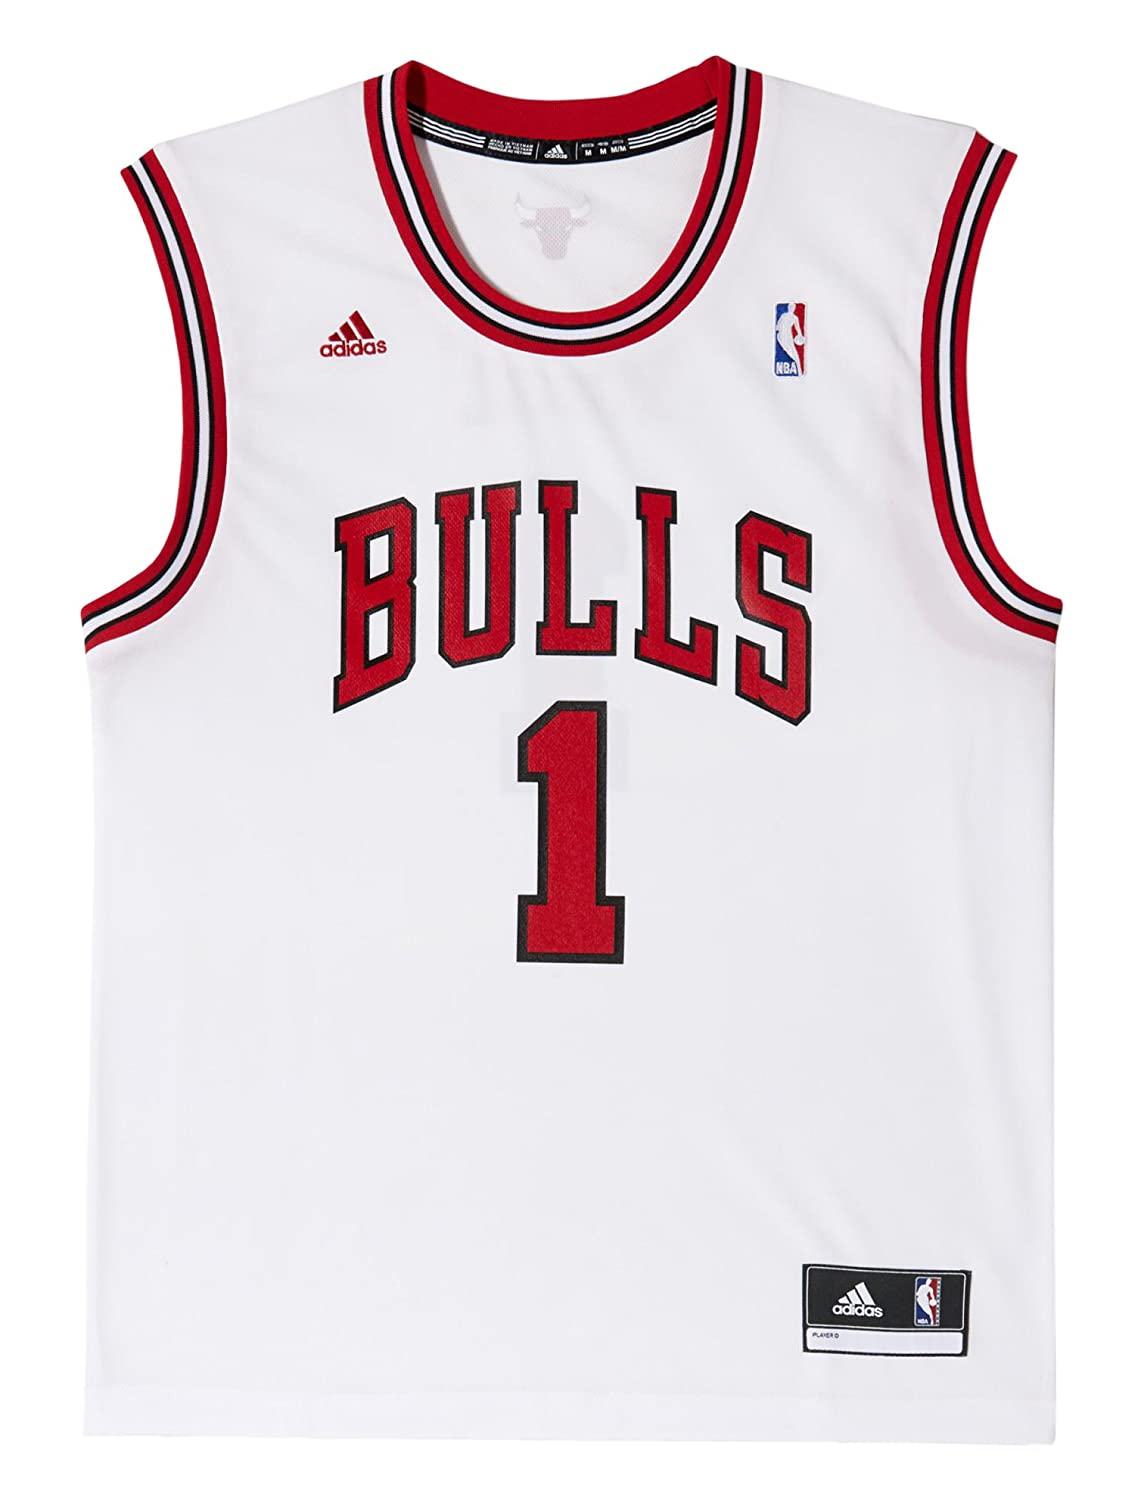 8c3a723d4 adidas Derrick Rose NBA Swingman Bulls Men s Basketball Jersey   Amazon.co.uk  Sports   Outdoors